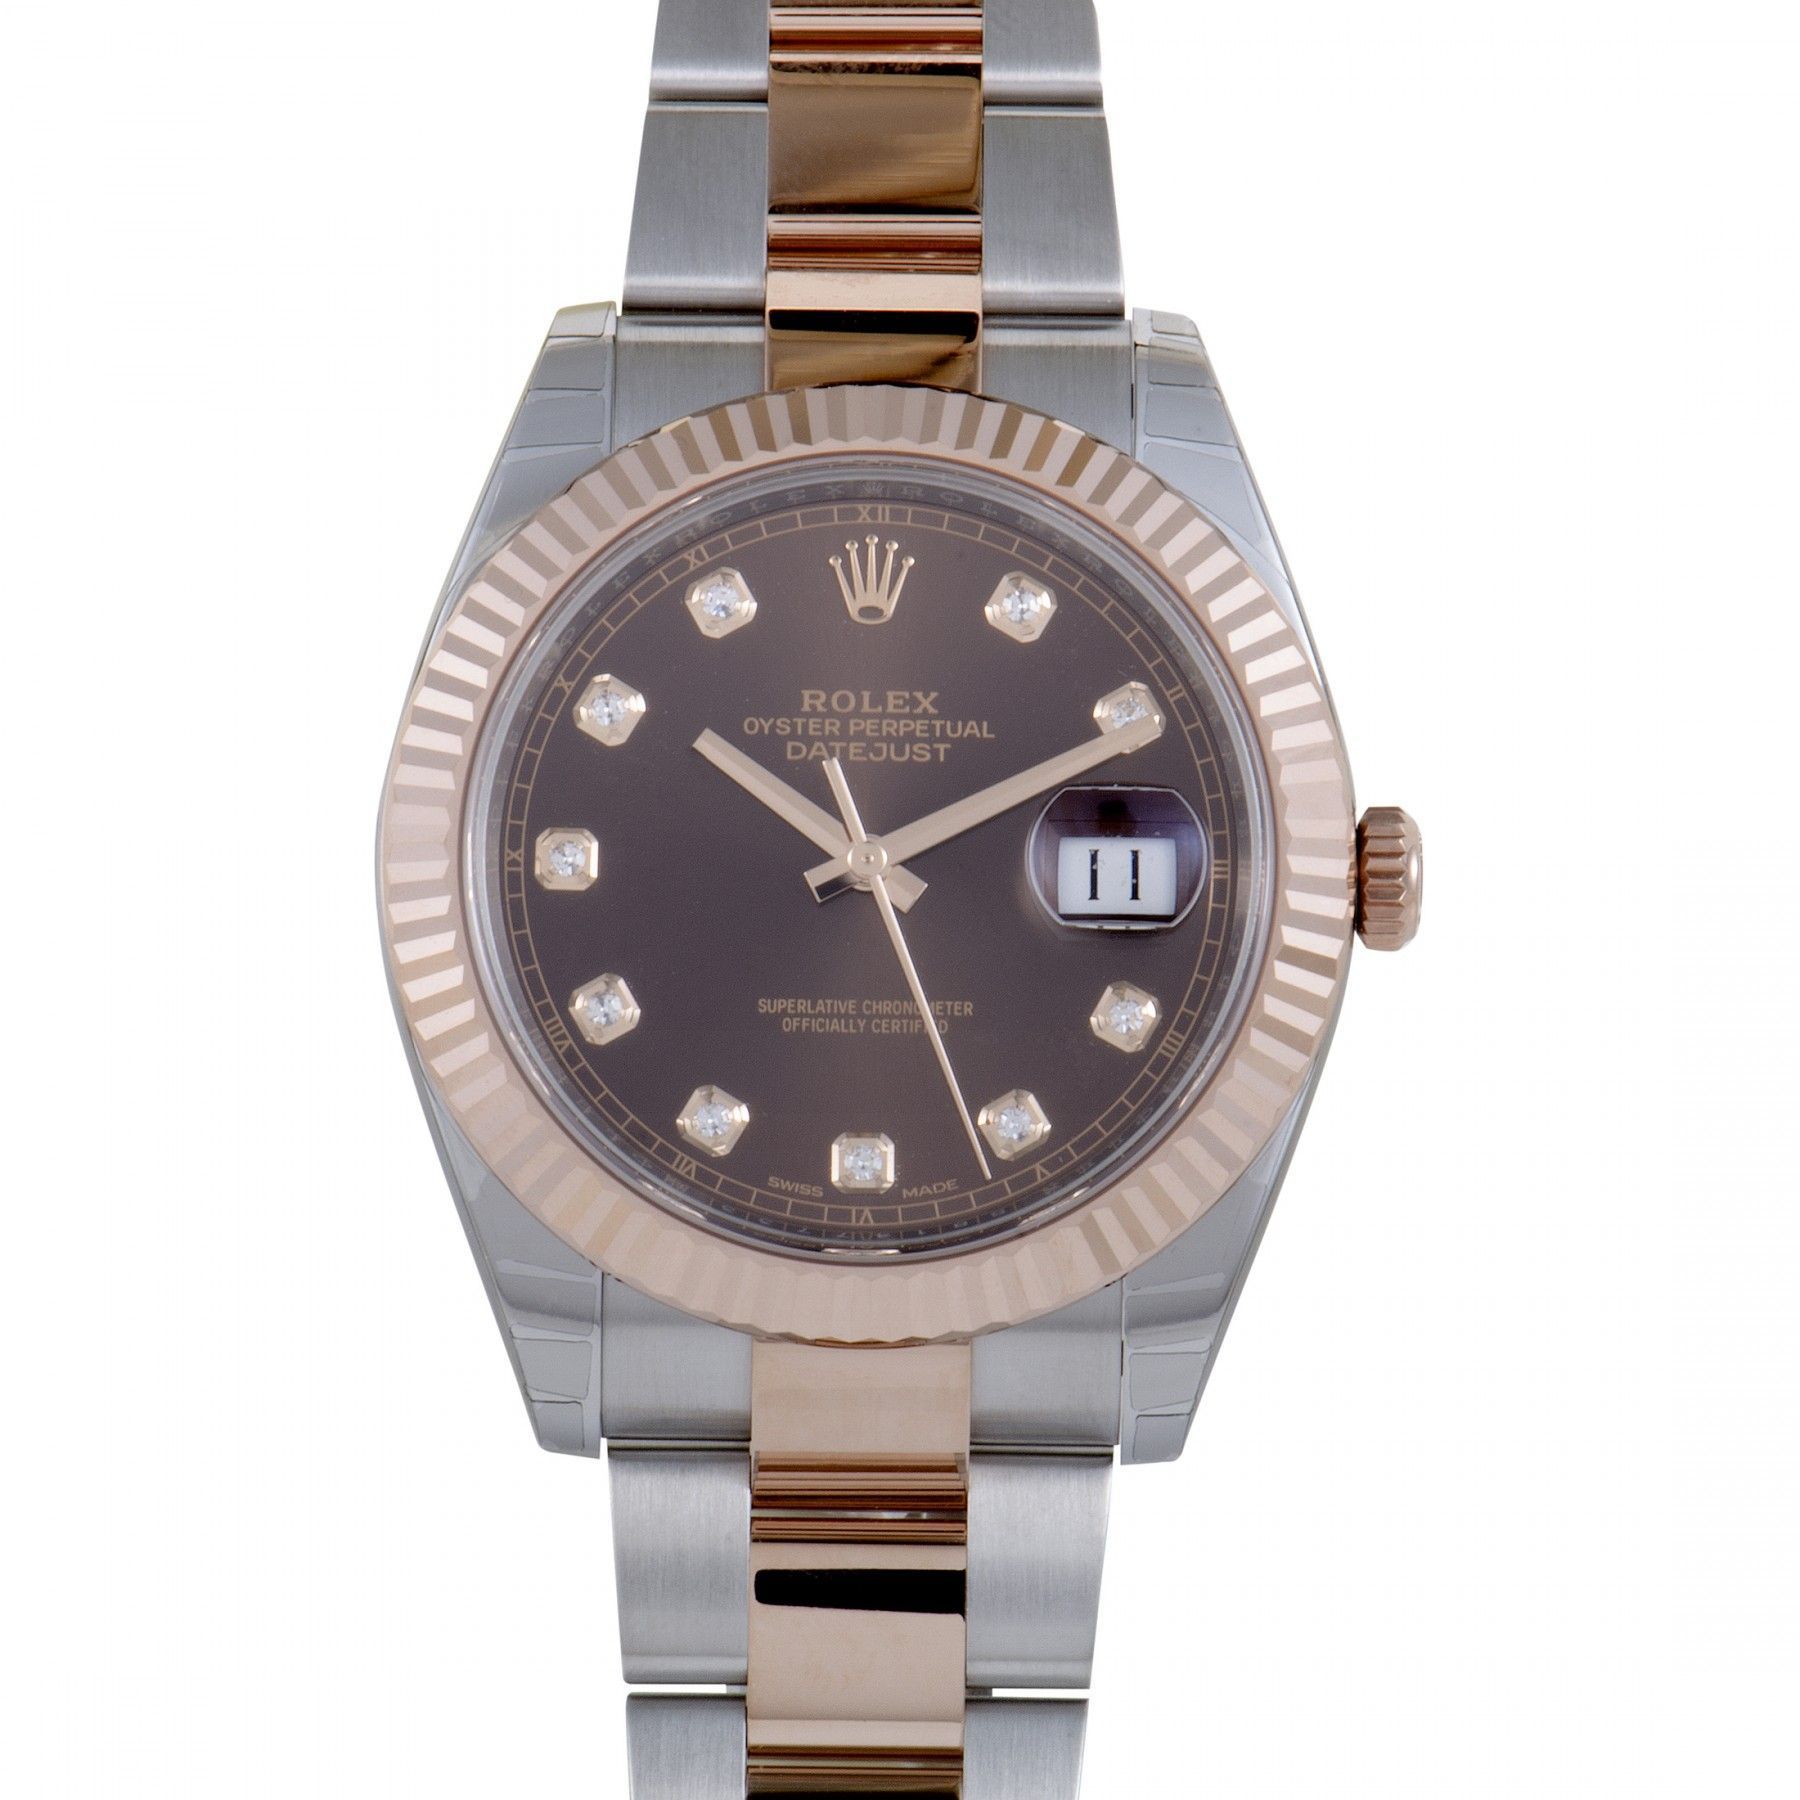 Oyster Perpetual Datejust 41 126331 chodo